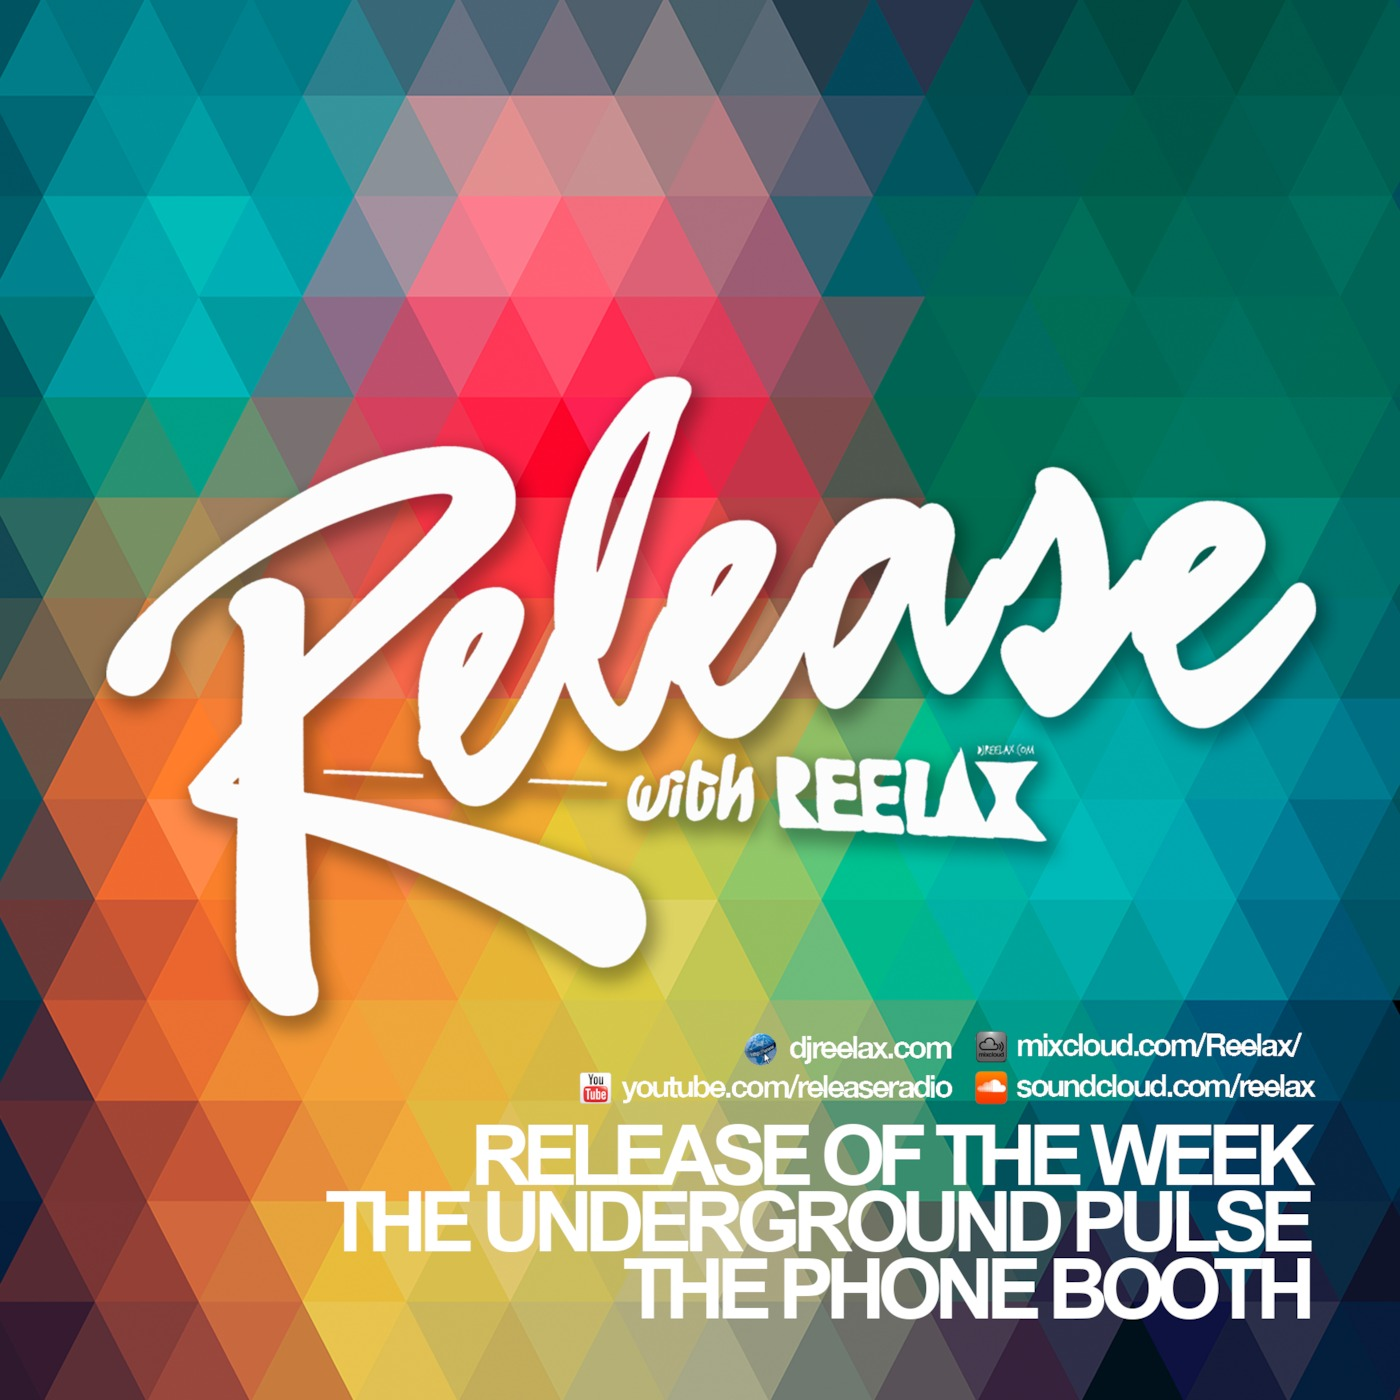 Release with Reelax